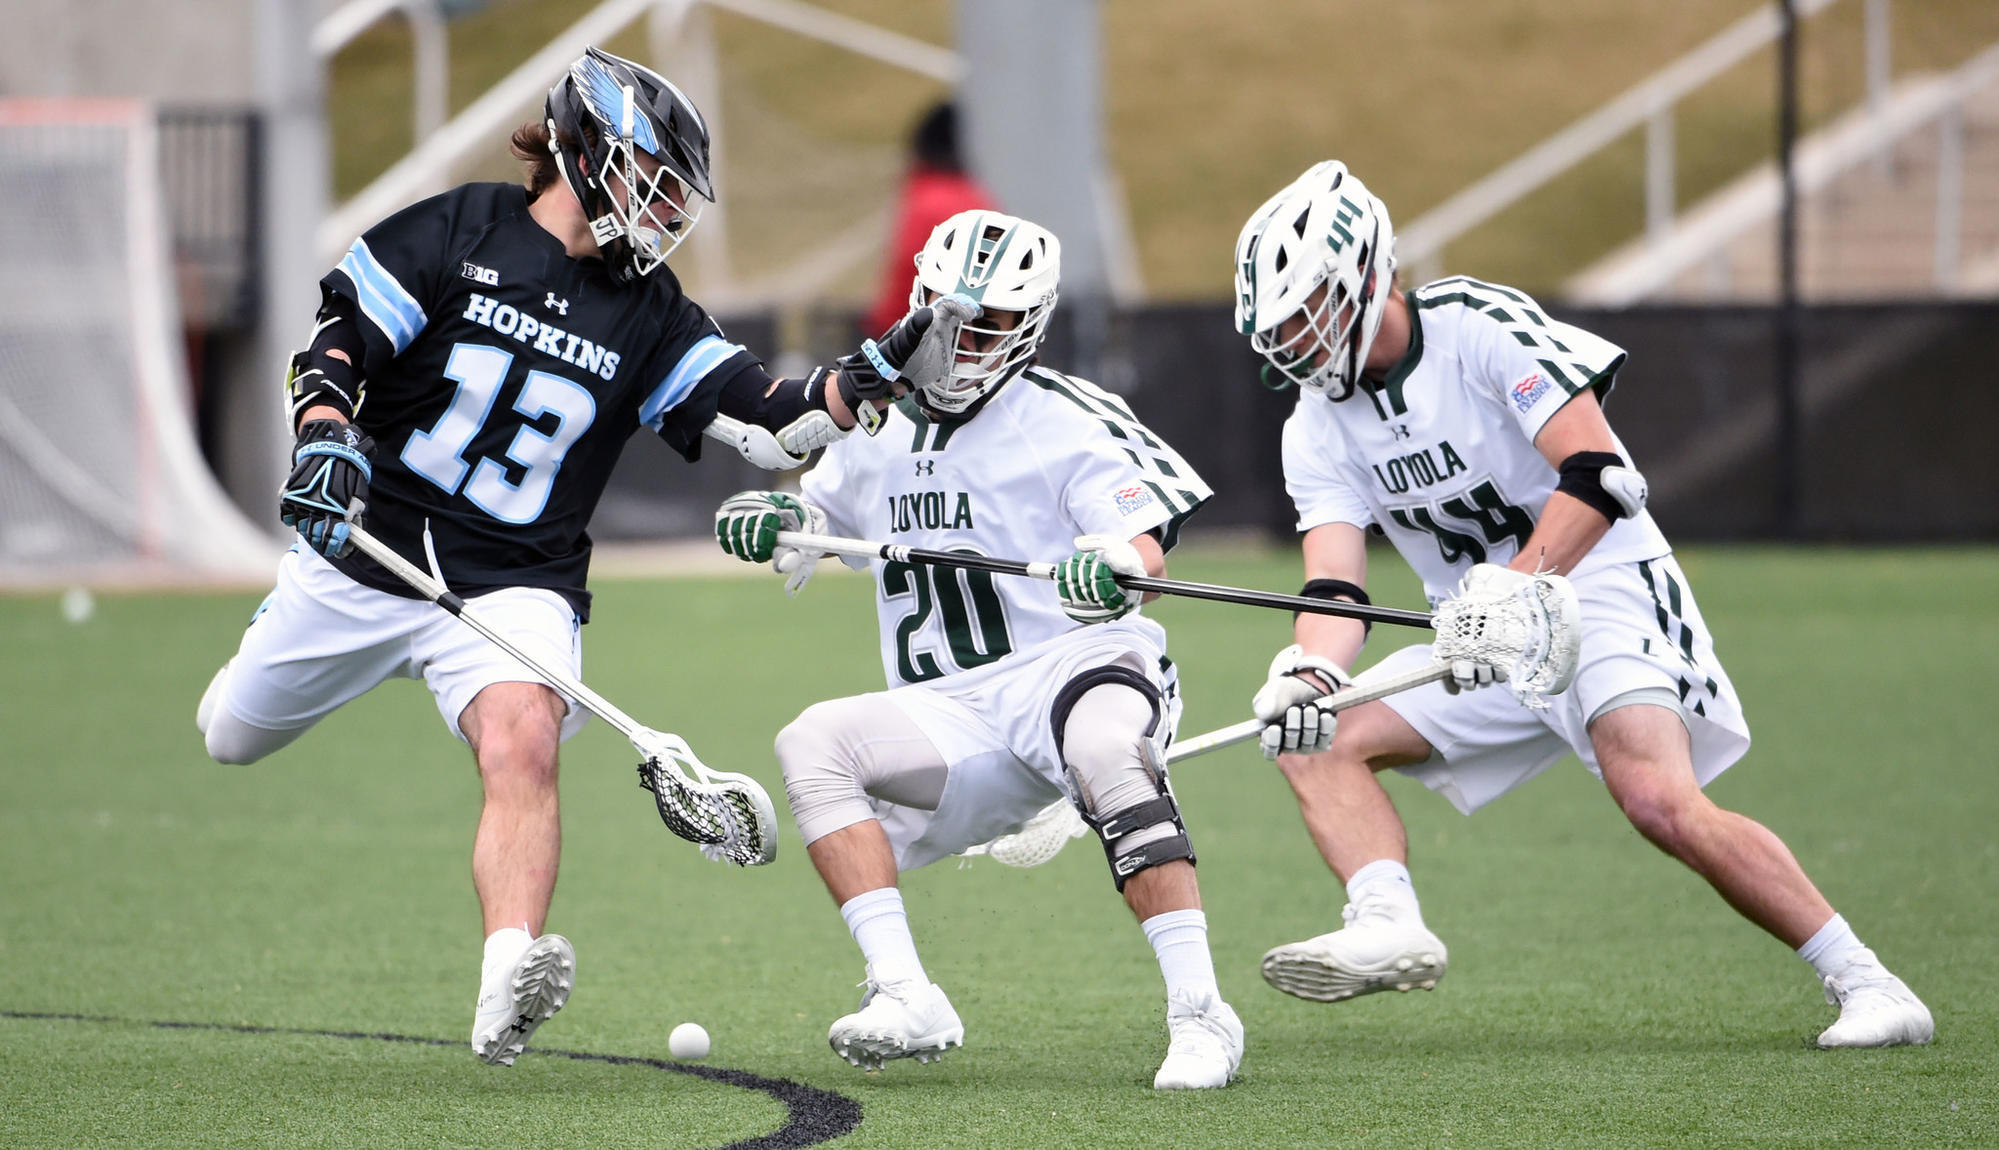 High Point Lacrosse >> Johns Hopkins men's lacrosse team isn't talented enough to overlook any opponent - Baltimore Sun